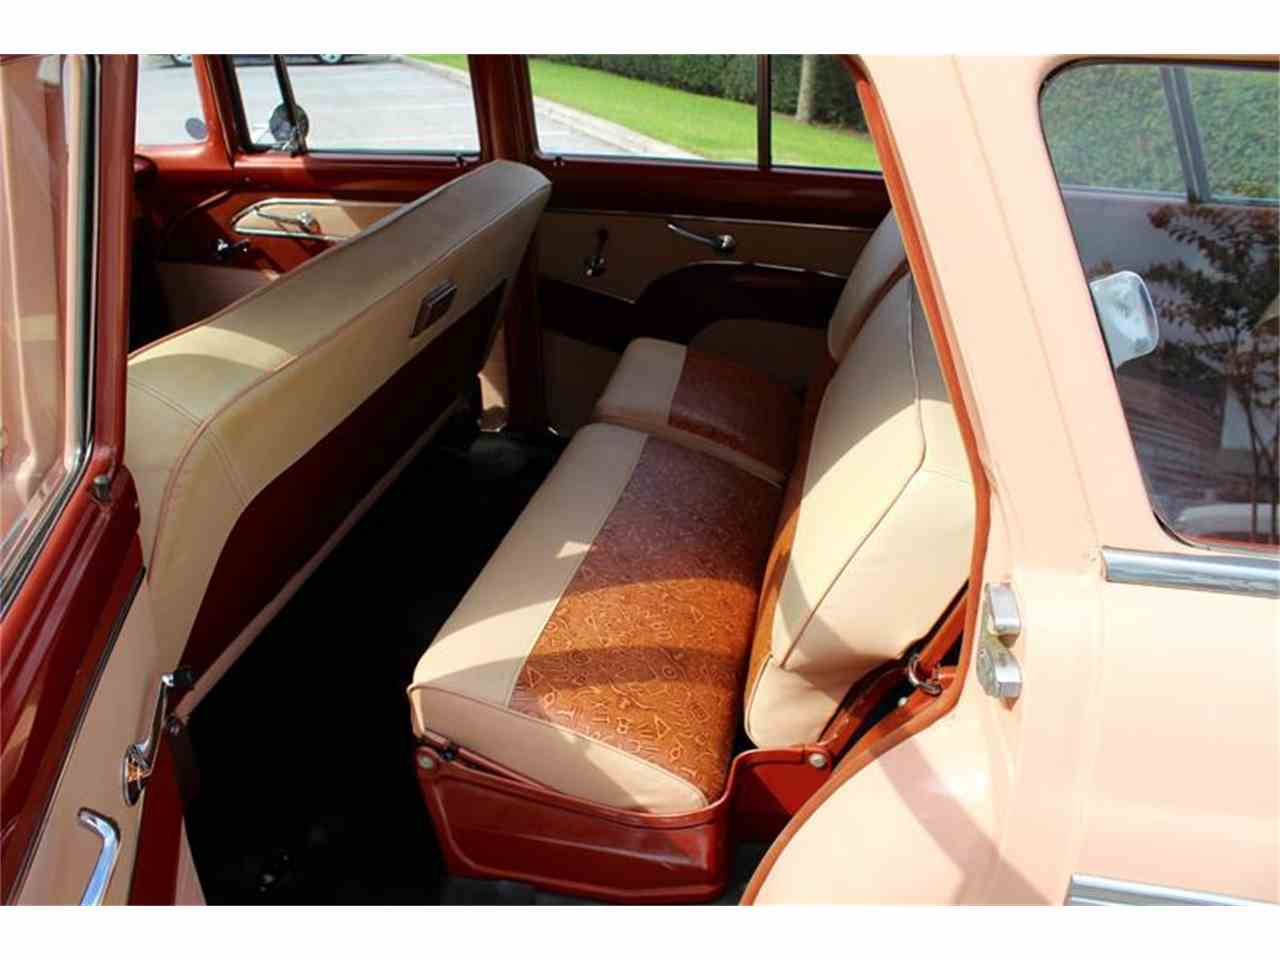 Large Picture of 1956 Ford Station Wagon located in Florida - $39,900.00 Offered by Classic Cars of Sarasota - LHIN